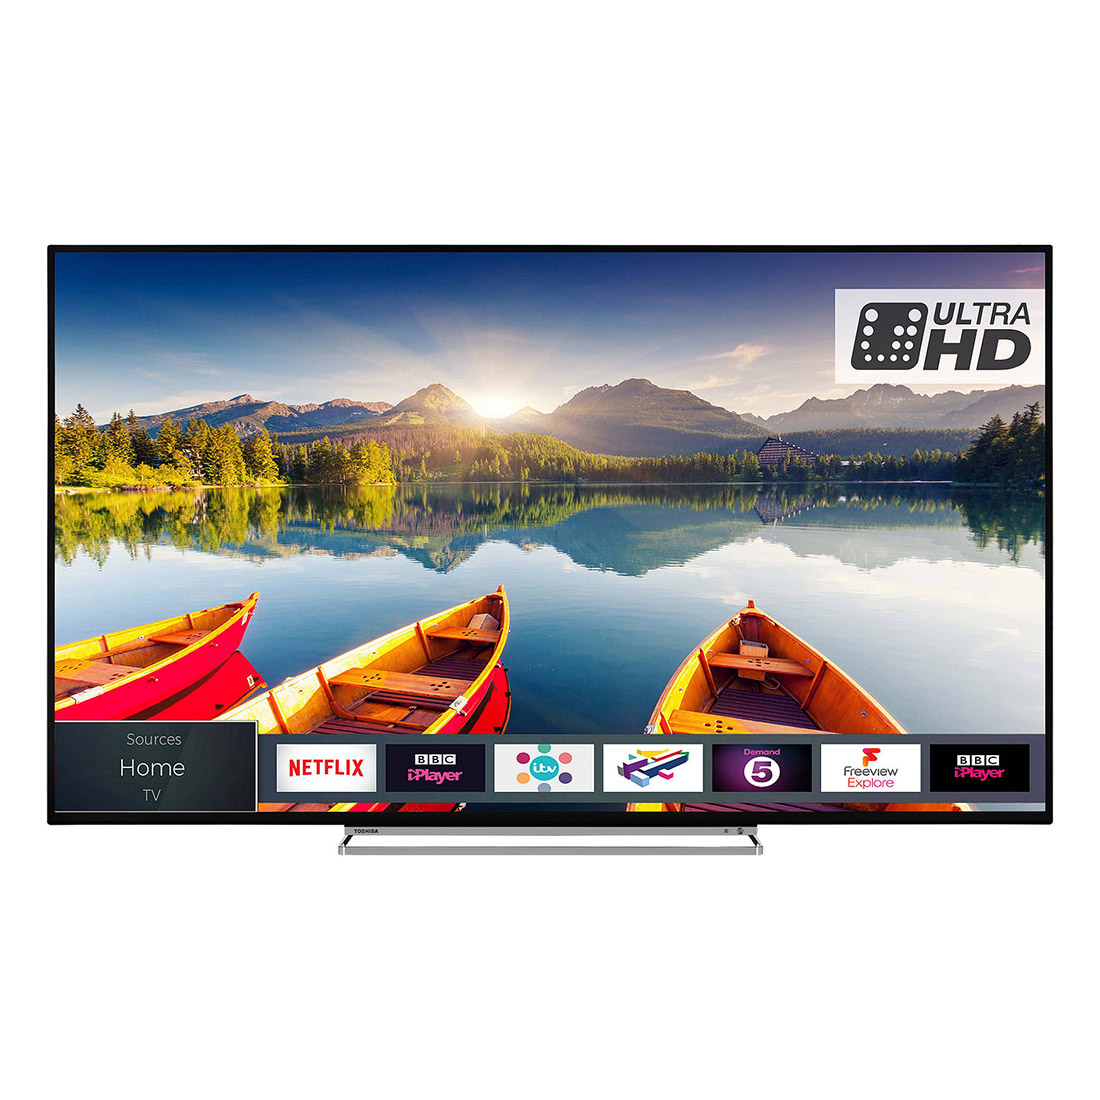 Toshiba LCD 40 Inch HD TV